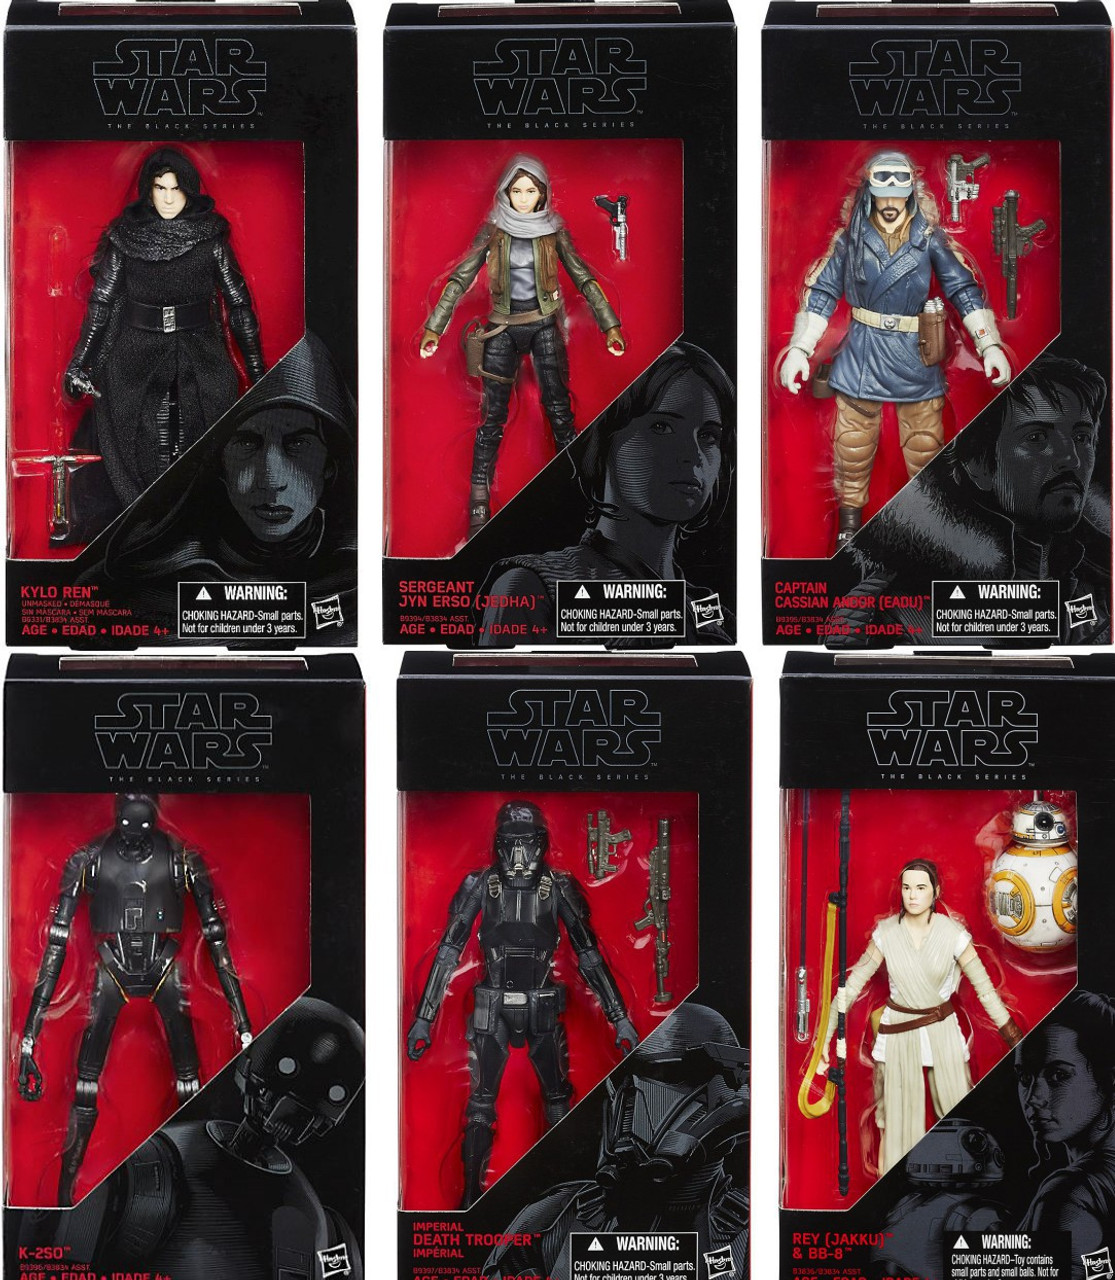 Star Wars Rogue One Action Figure Black Series 6-Inch Jyn Erso